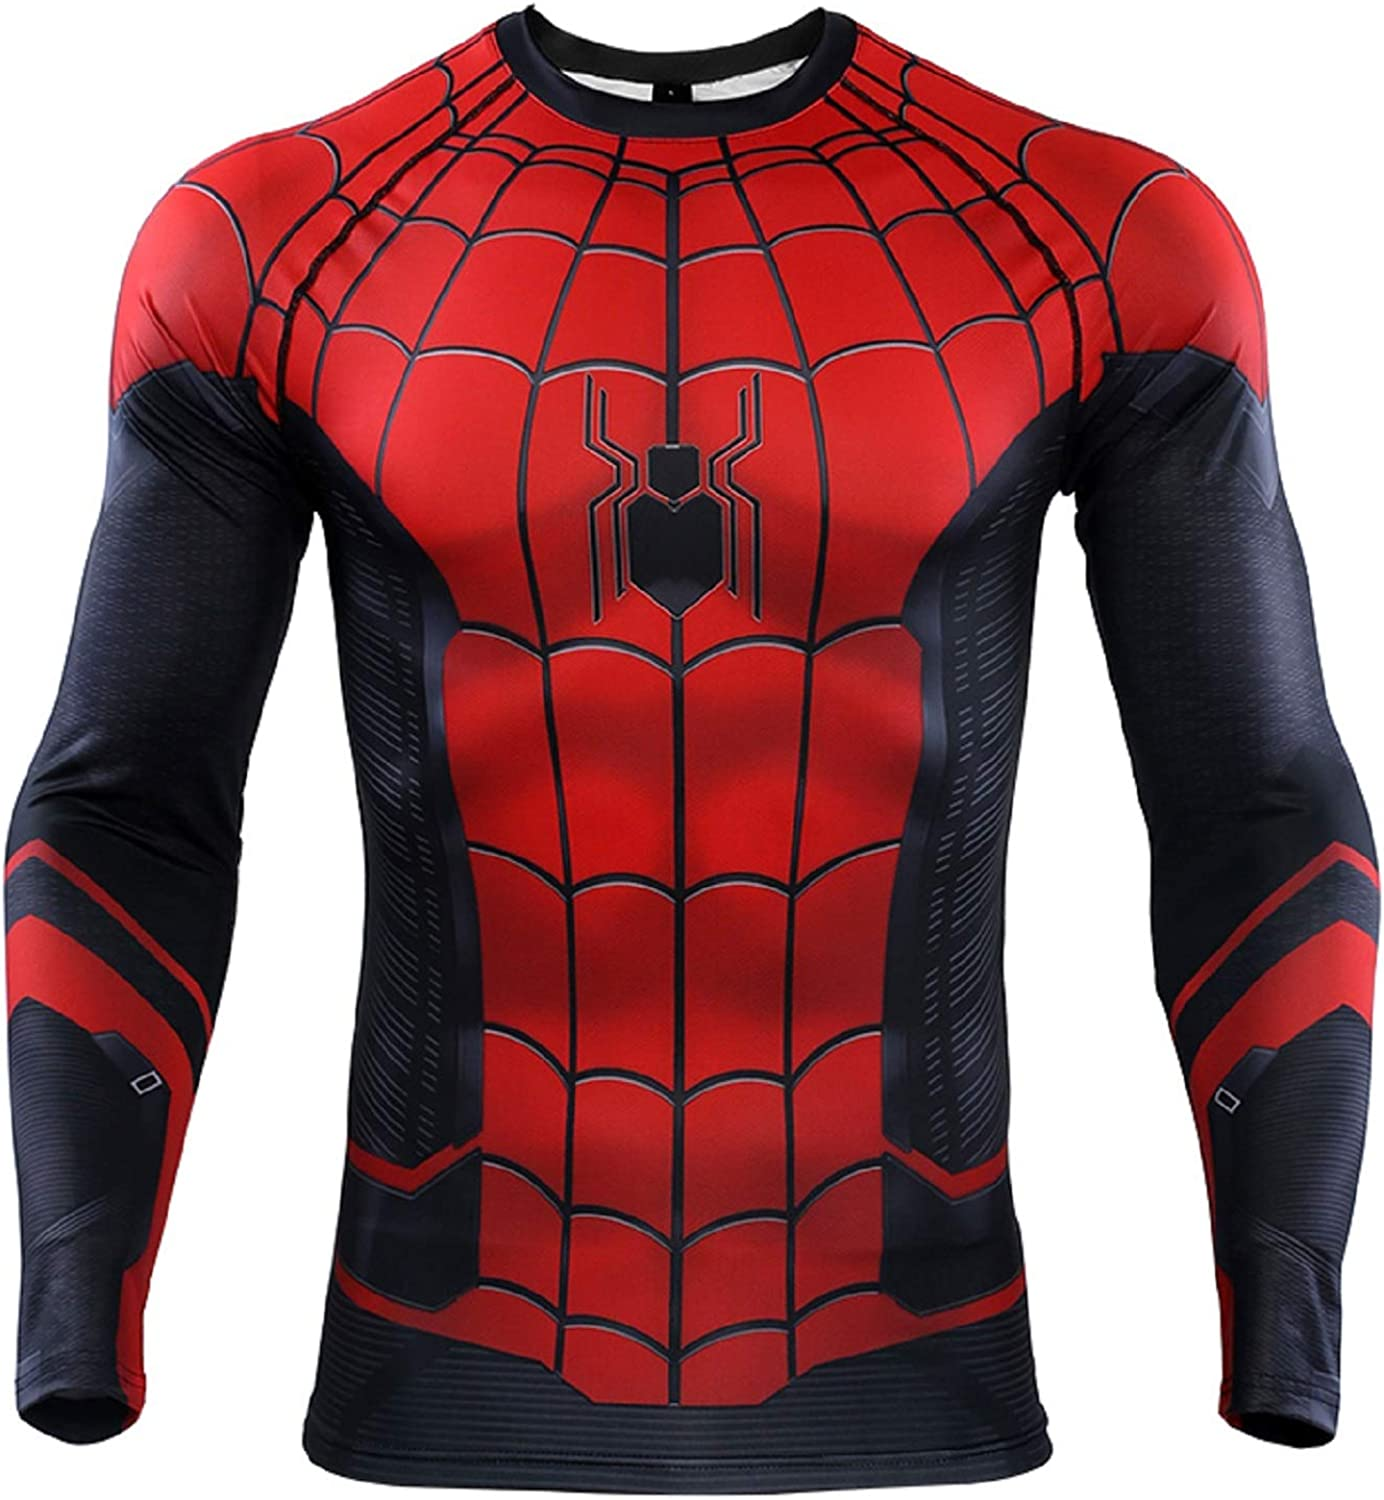 NEPIA GYM Super-Hero Spiderman Men's Compression Fitness Shirts Quick Drying Tights